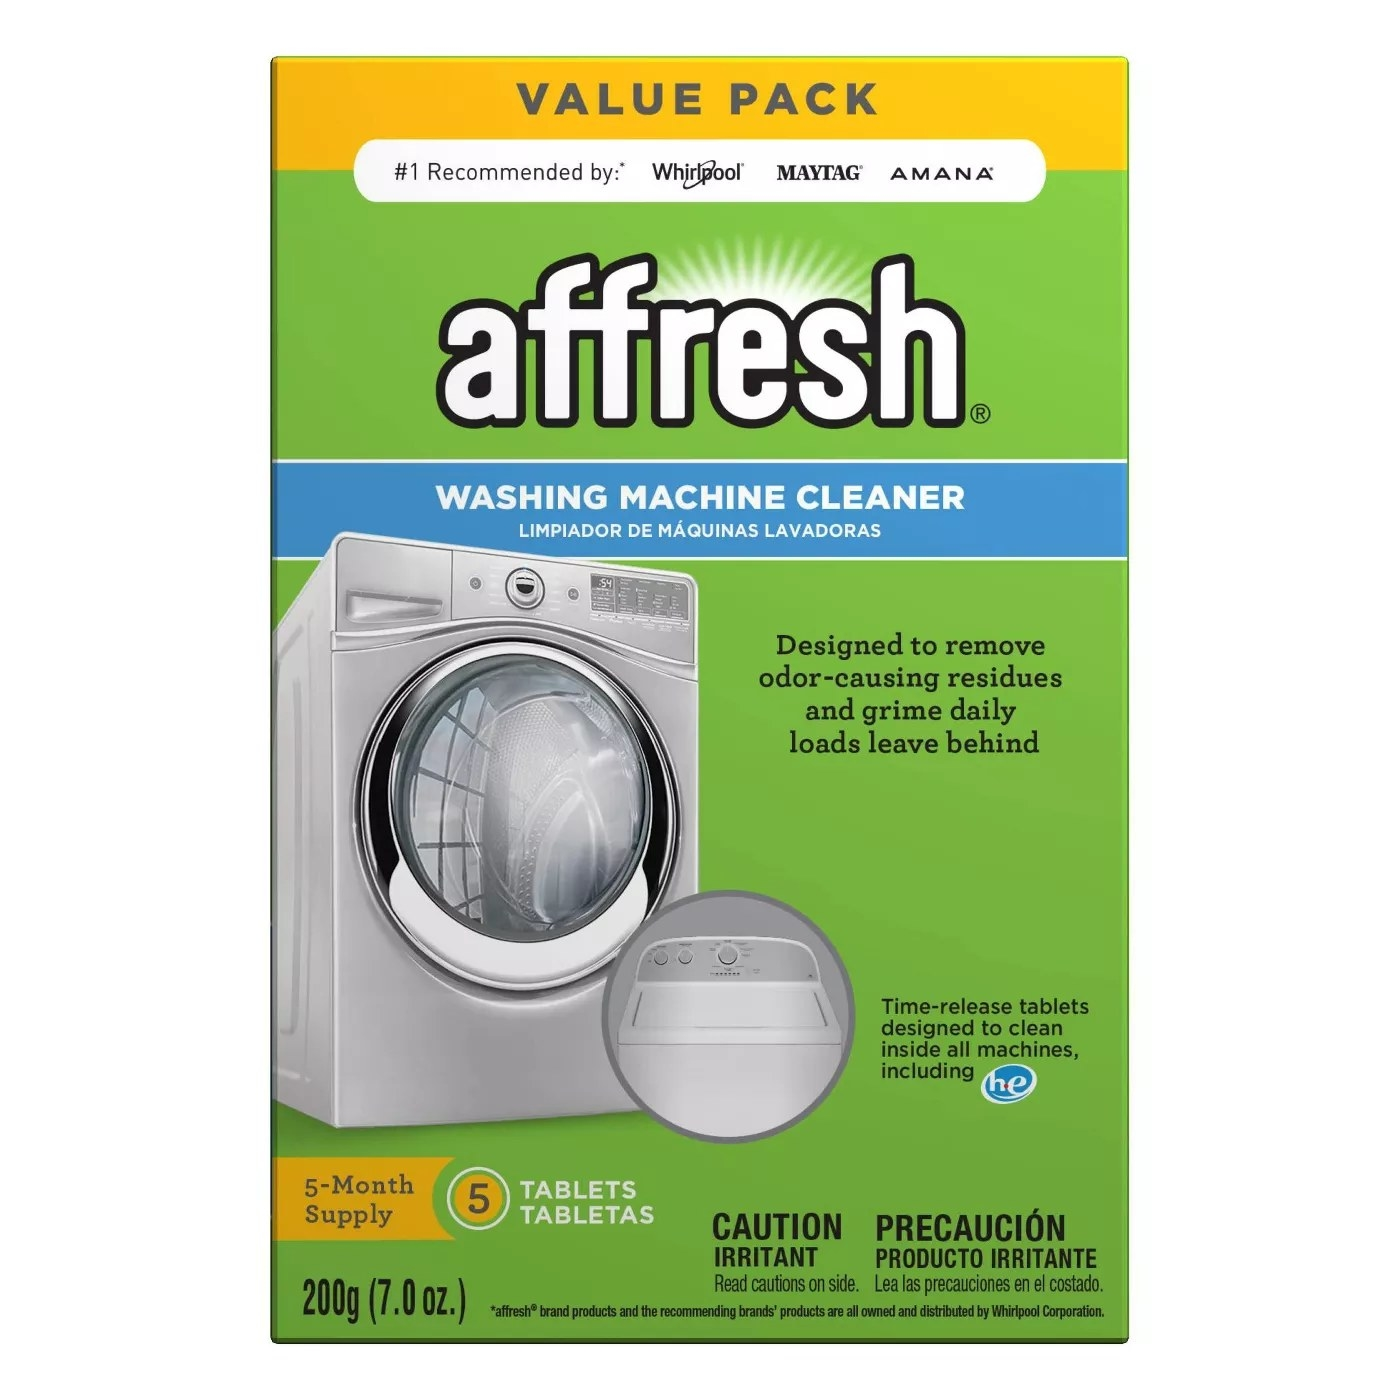 A 5-month supply of Affresh washing machine cleaner that is designed to remove odor-causing residues and grime daily loads leave behind